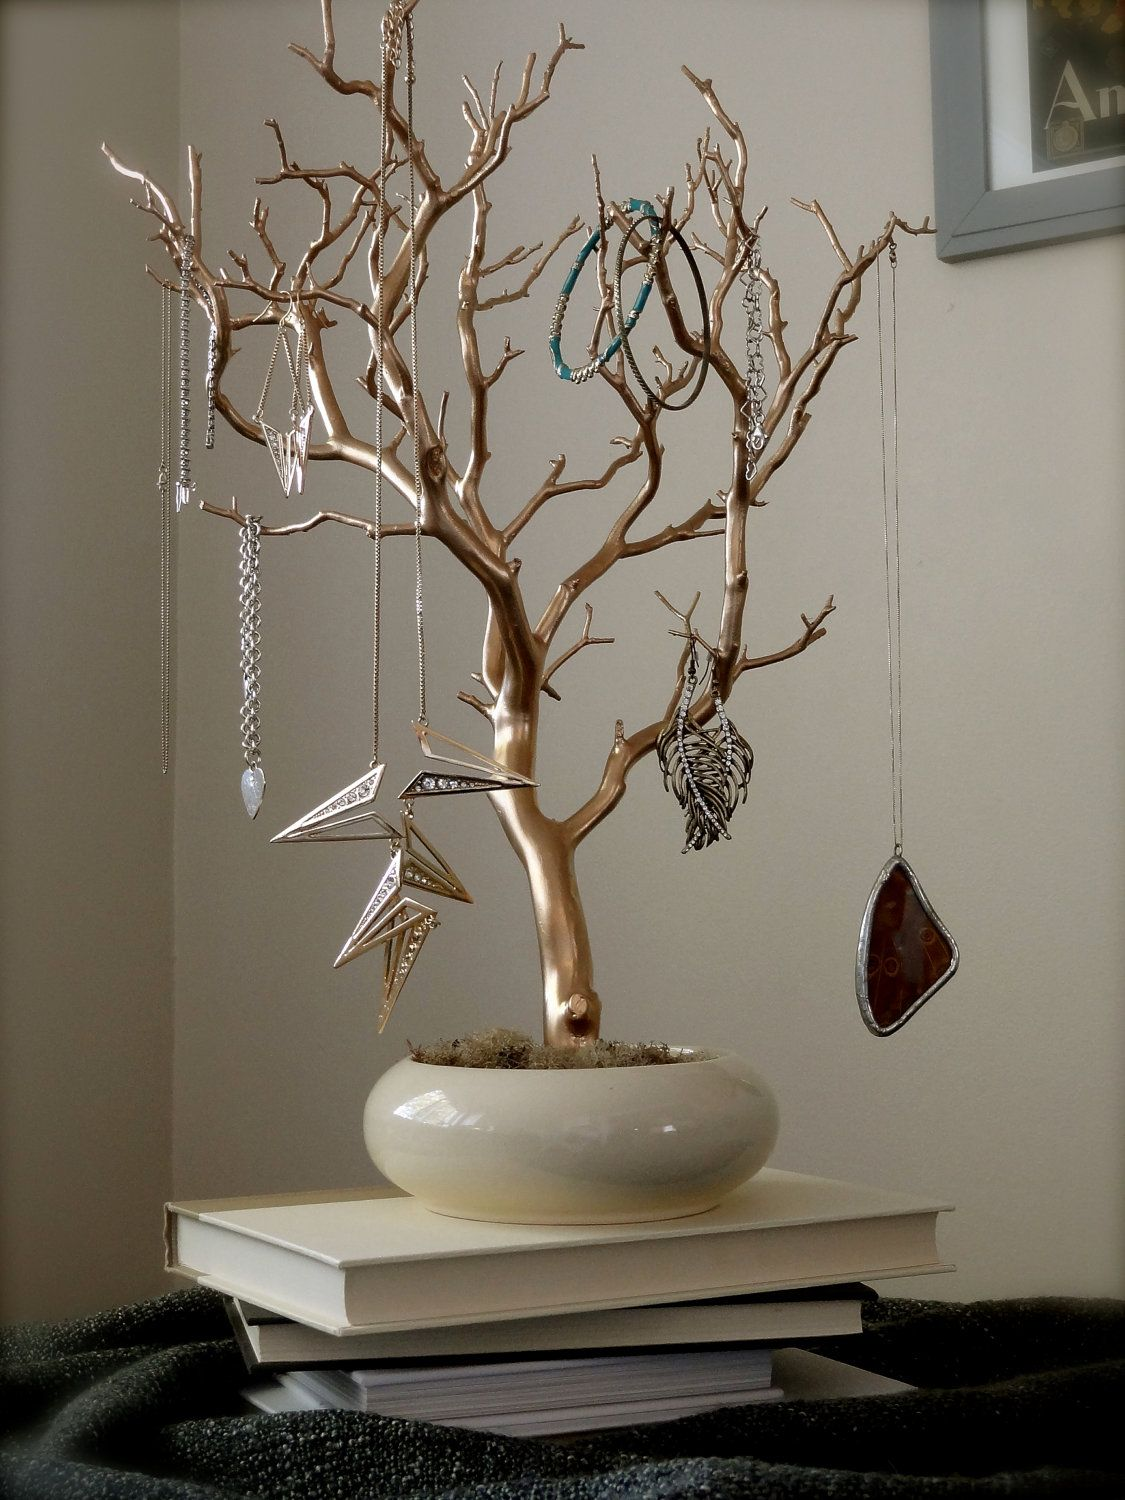 Tree Branch Jewelry Holder : branch, jewelry, holder, Jewelry, Holder, Organizer, Cream, Painted, Tree,